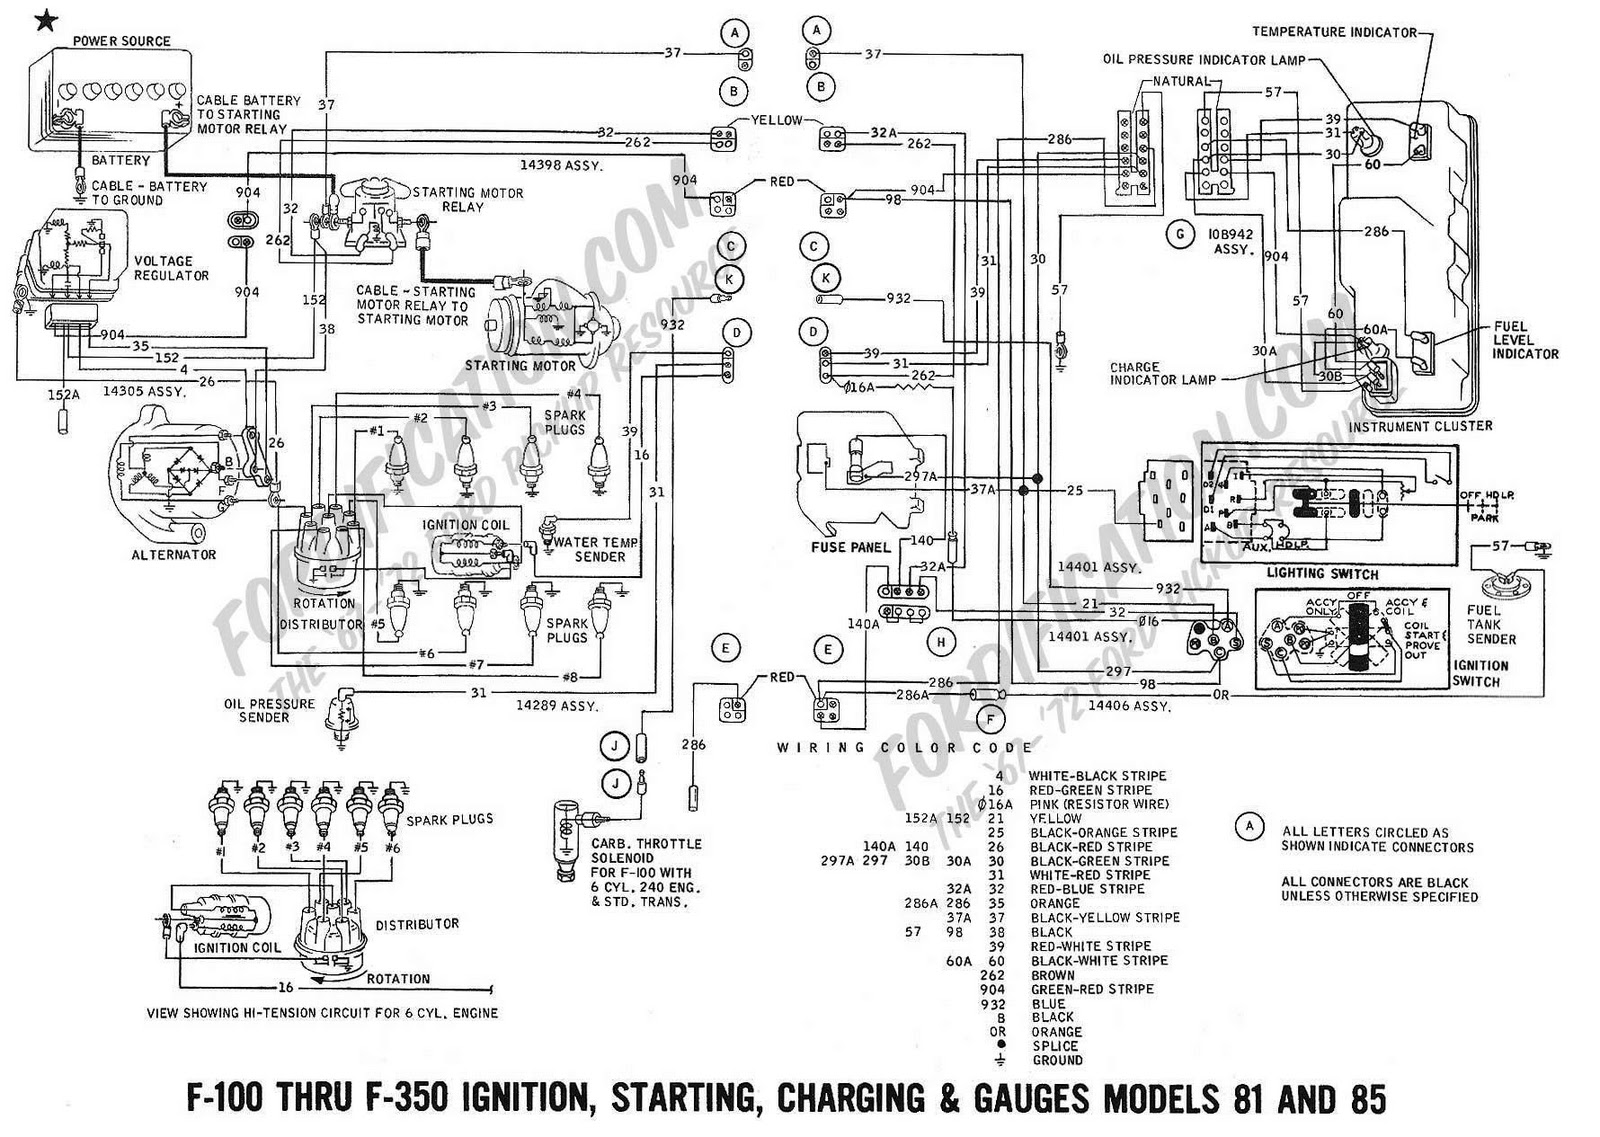 Wiring Diagram For 1986 Club Car Golf Cart besides Honda Marine Ignition Switch Wiring Diagram also Omc 4 3 Wiring Diagram together with Wiring Harness Efi together with 7qd4b 88 Sea Ray Need Wiring Diagram Tach. on mercruiser key switch wiring diagram